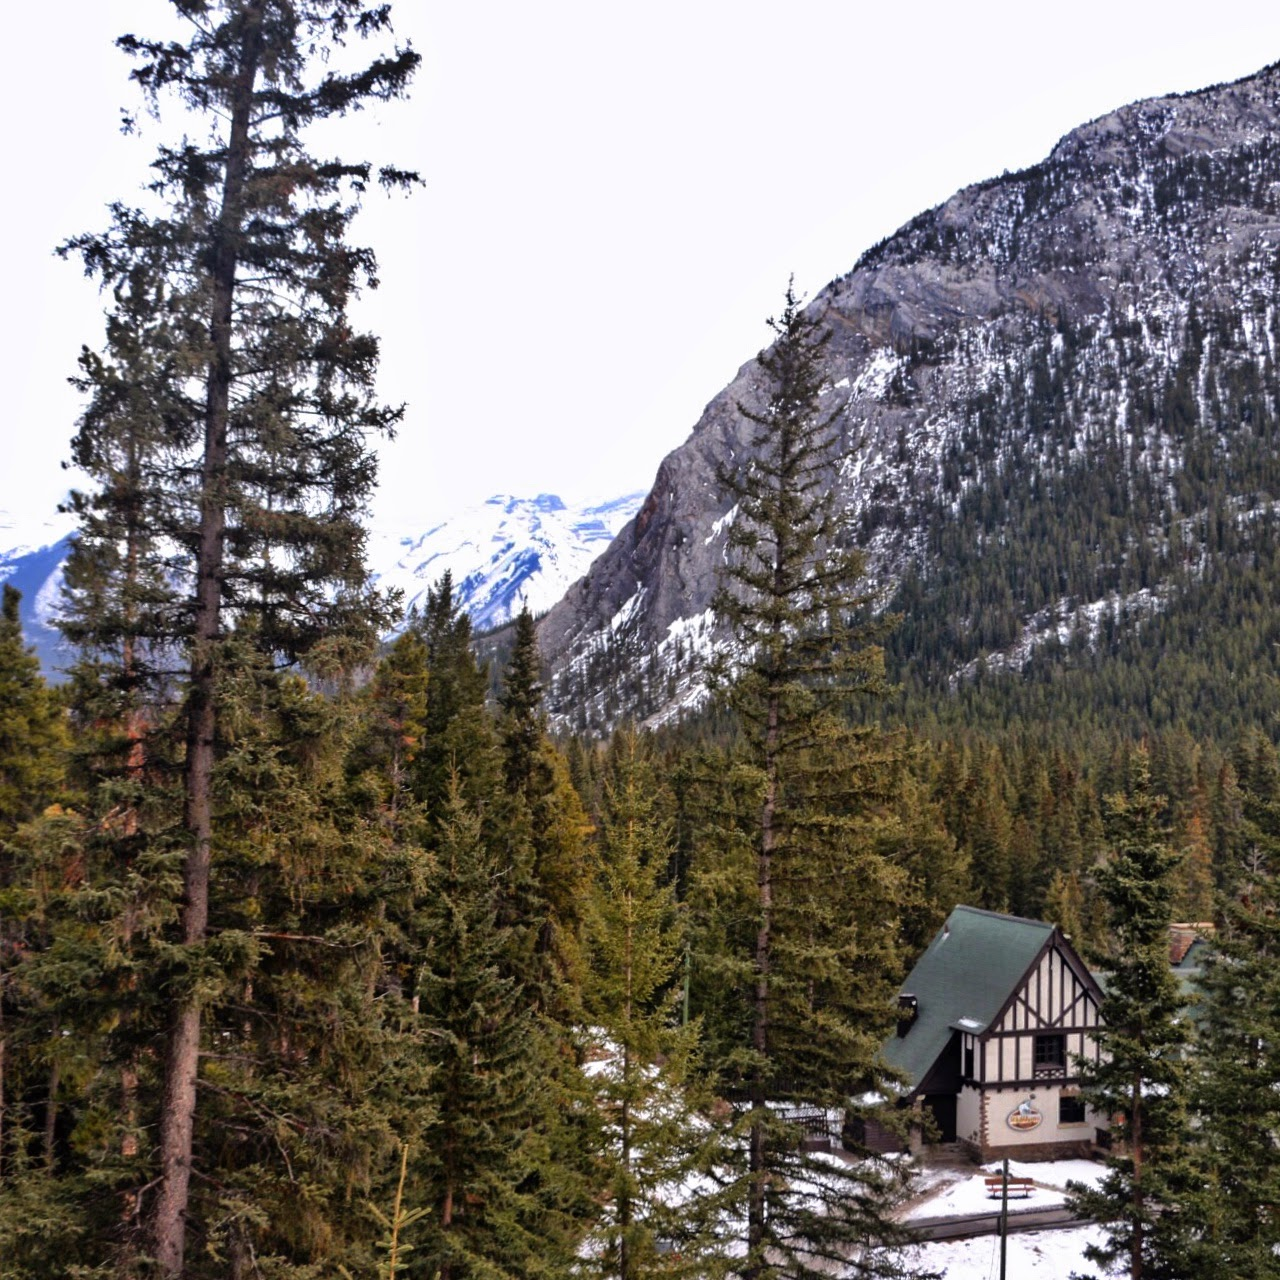 Fairmont Banff Springs in Alberta Canada by Jessica Mack, SweetDivergence